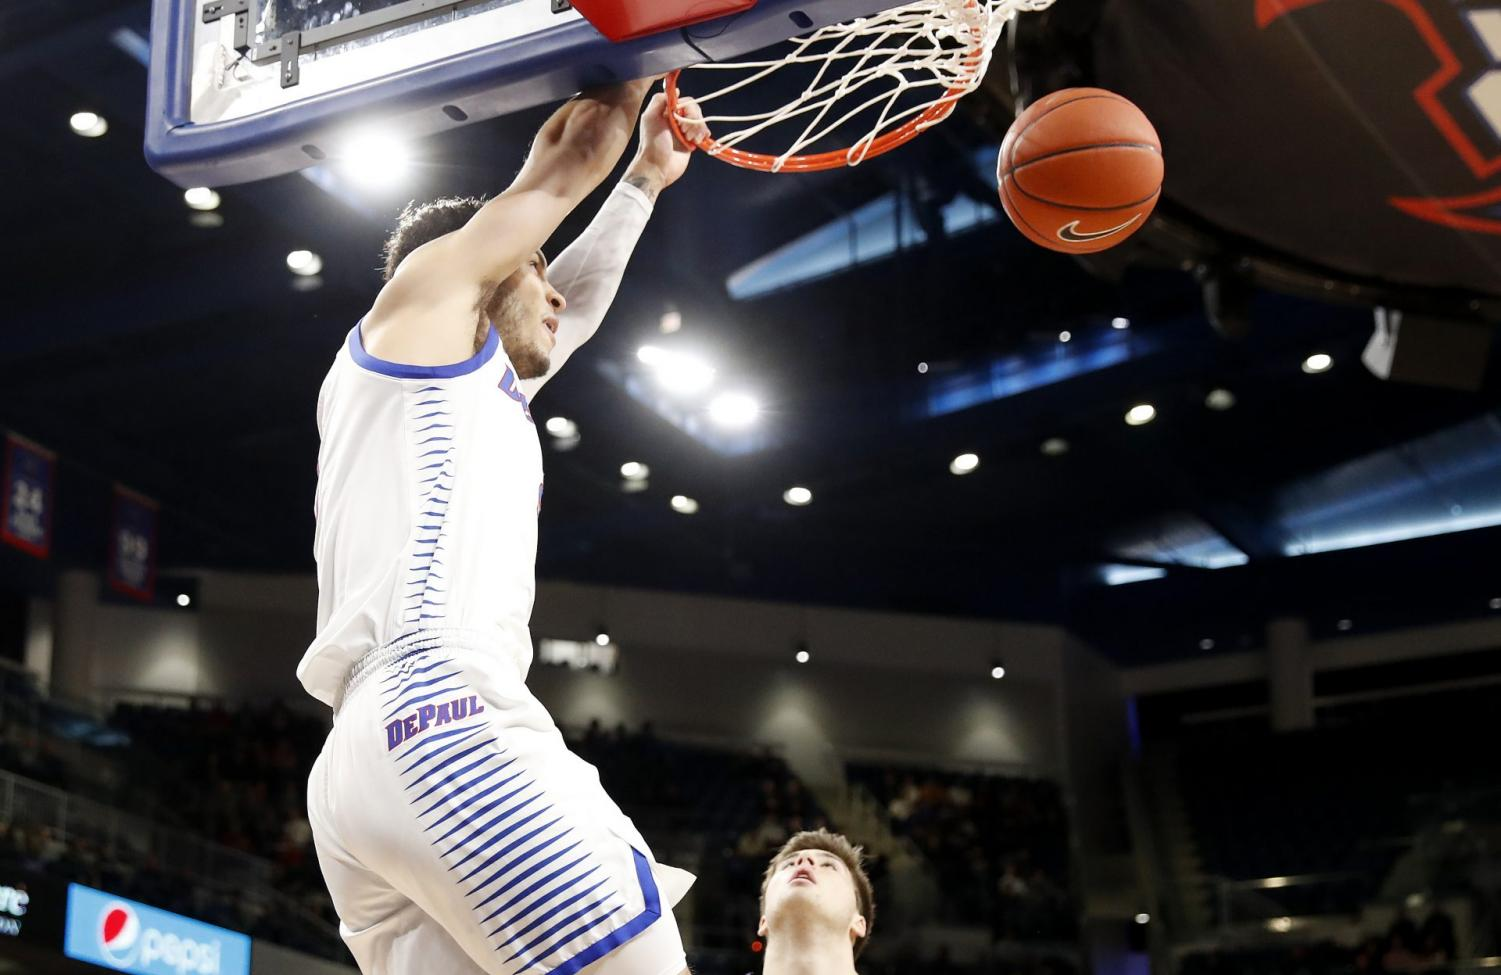 DePaul junior forward Jaylen Butz dunks the ball against Northwestern. Butz finished the game with 24 points.